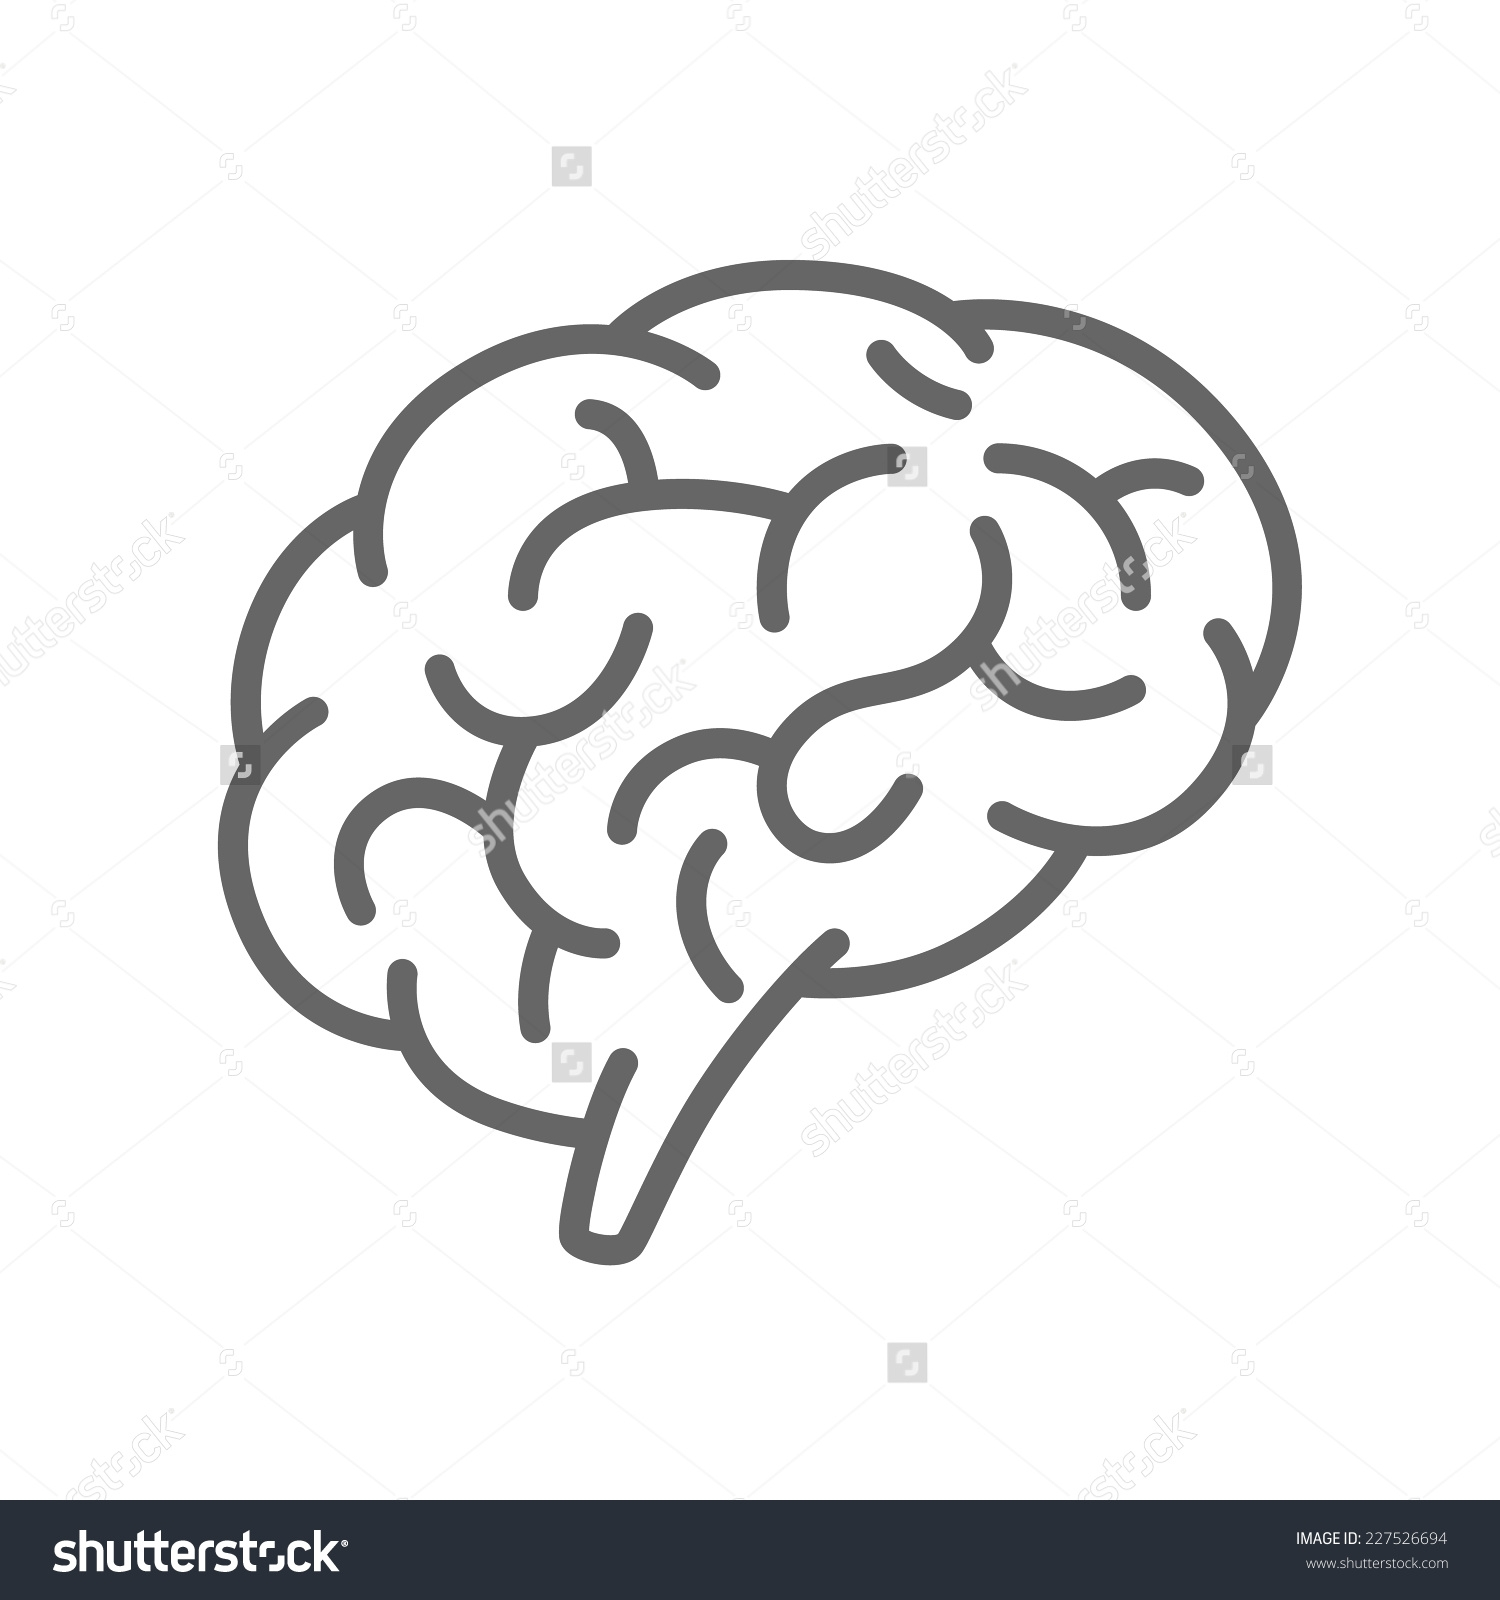 Brain clipart simple. Pencil and in color